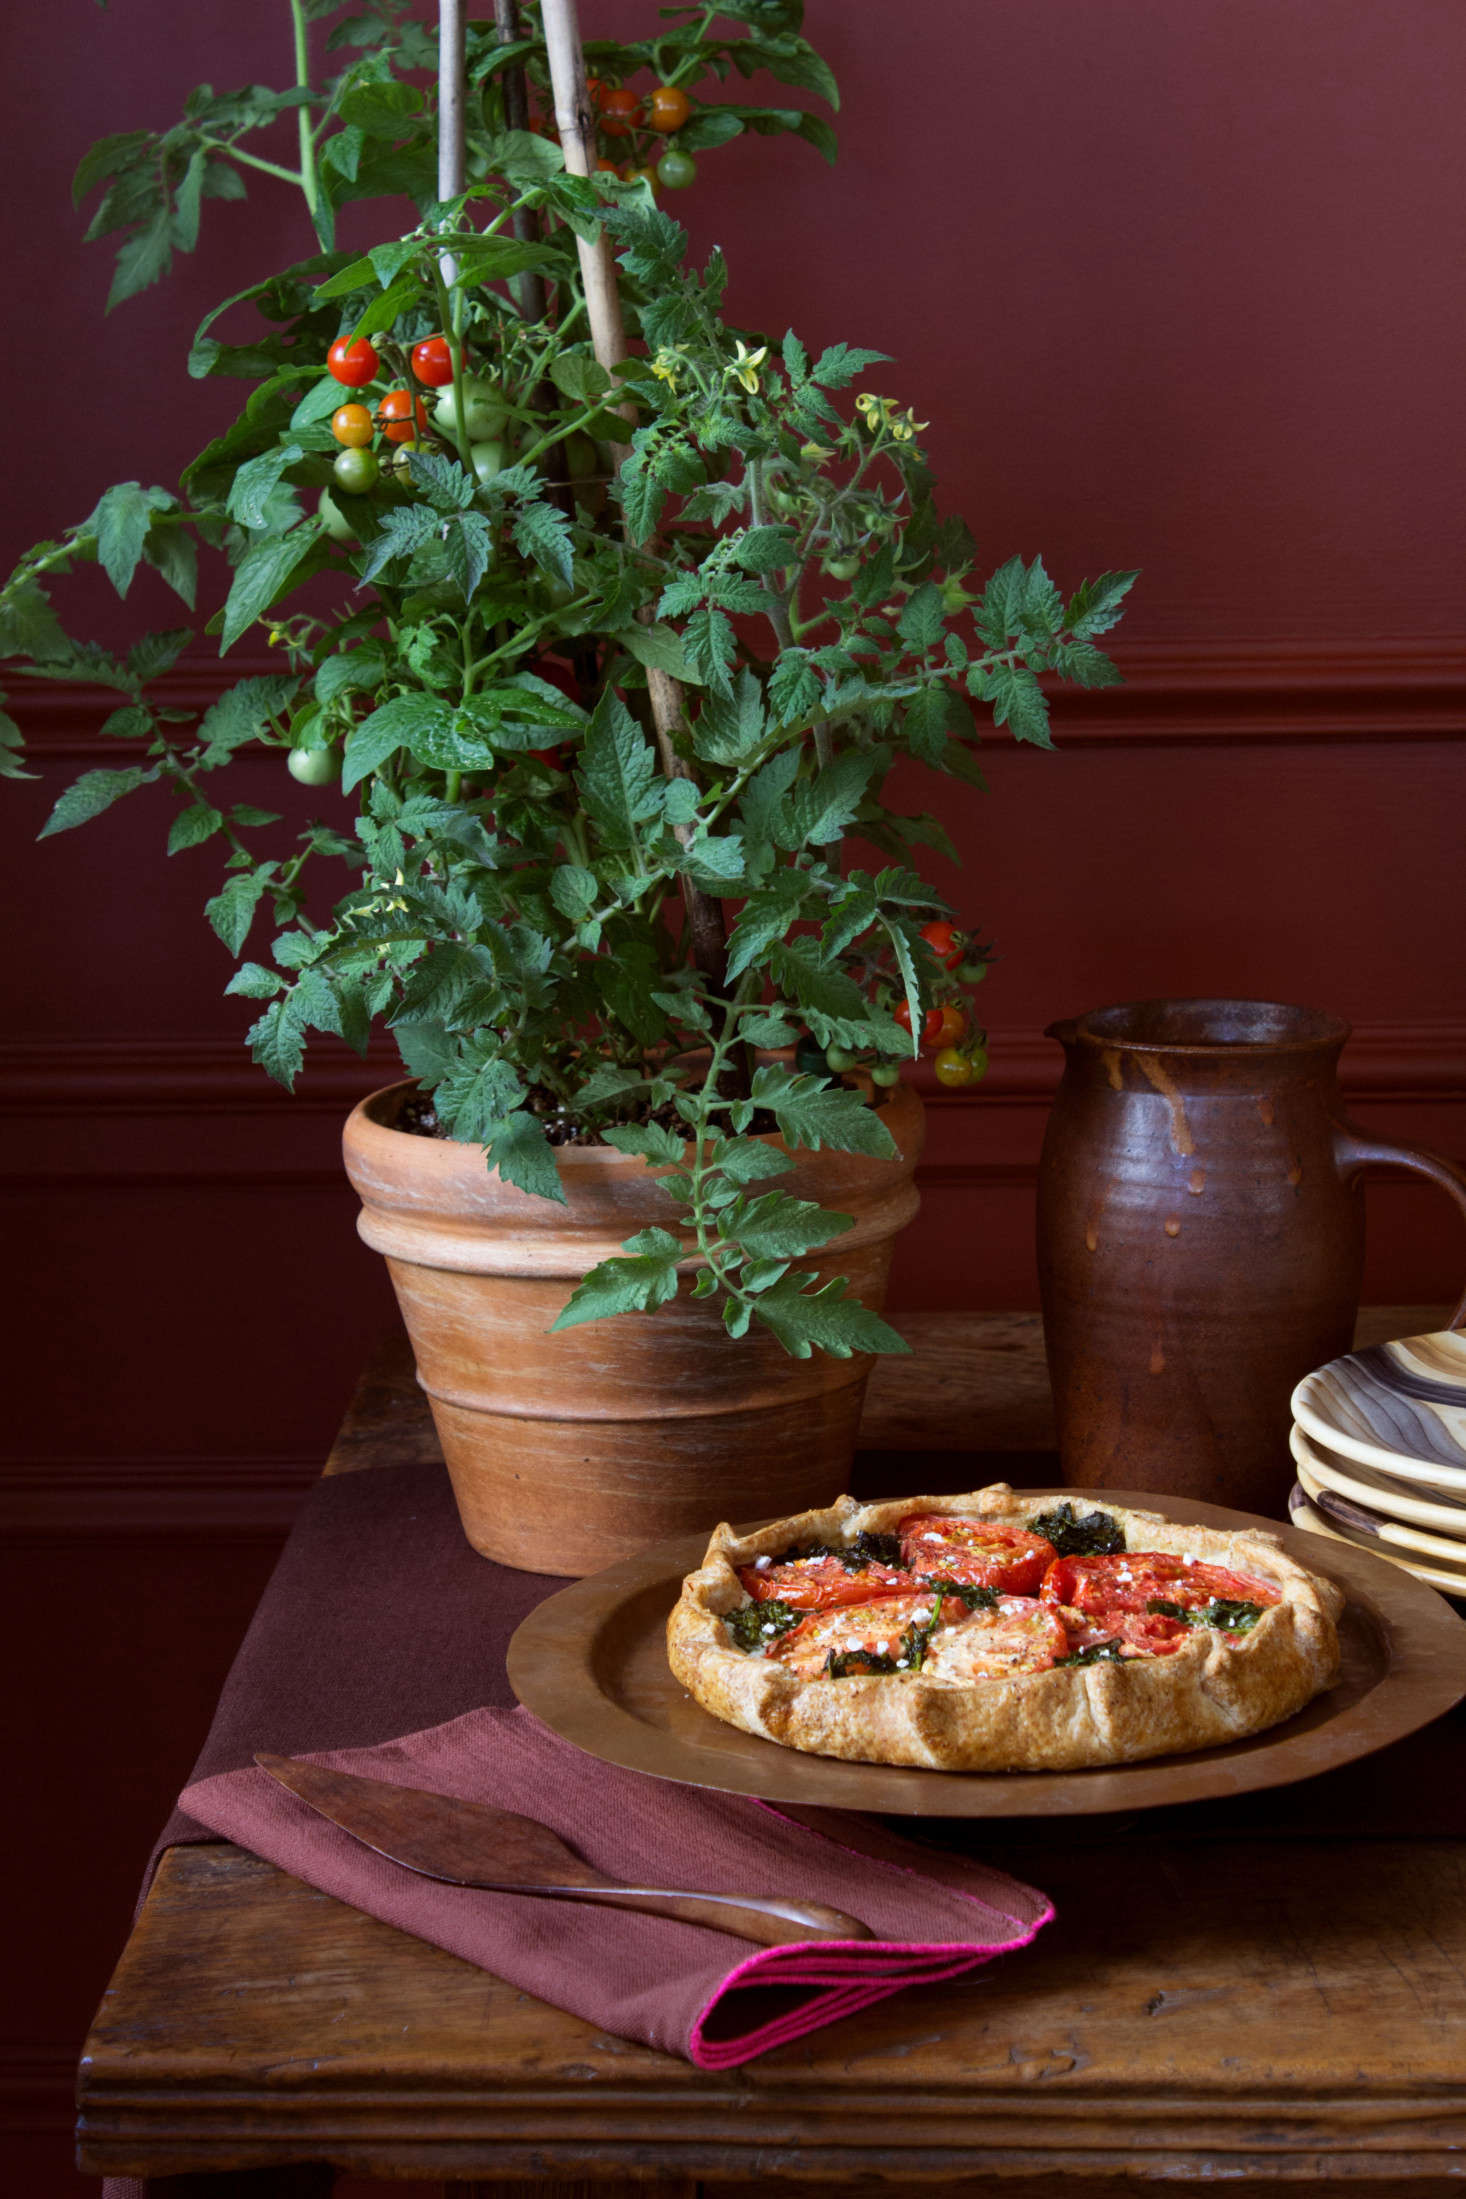 """Just repurpose a plant from your patio garden as decor,"" recommends Stark. On the menu is a tomato galette from Colson Patisserie in Brooklyn.  And for a fitting tomato-red backdrop, the walls are painted in Benjamin Moore's Red Rock."